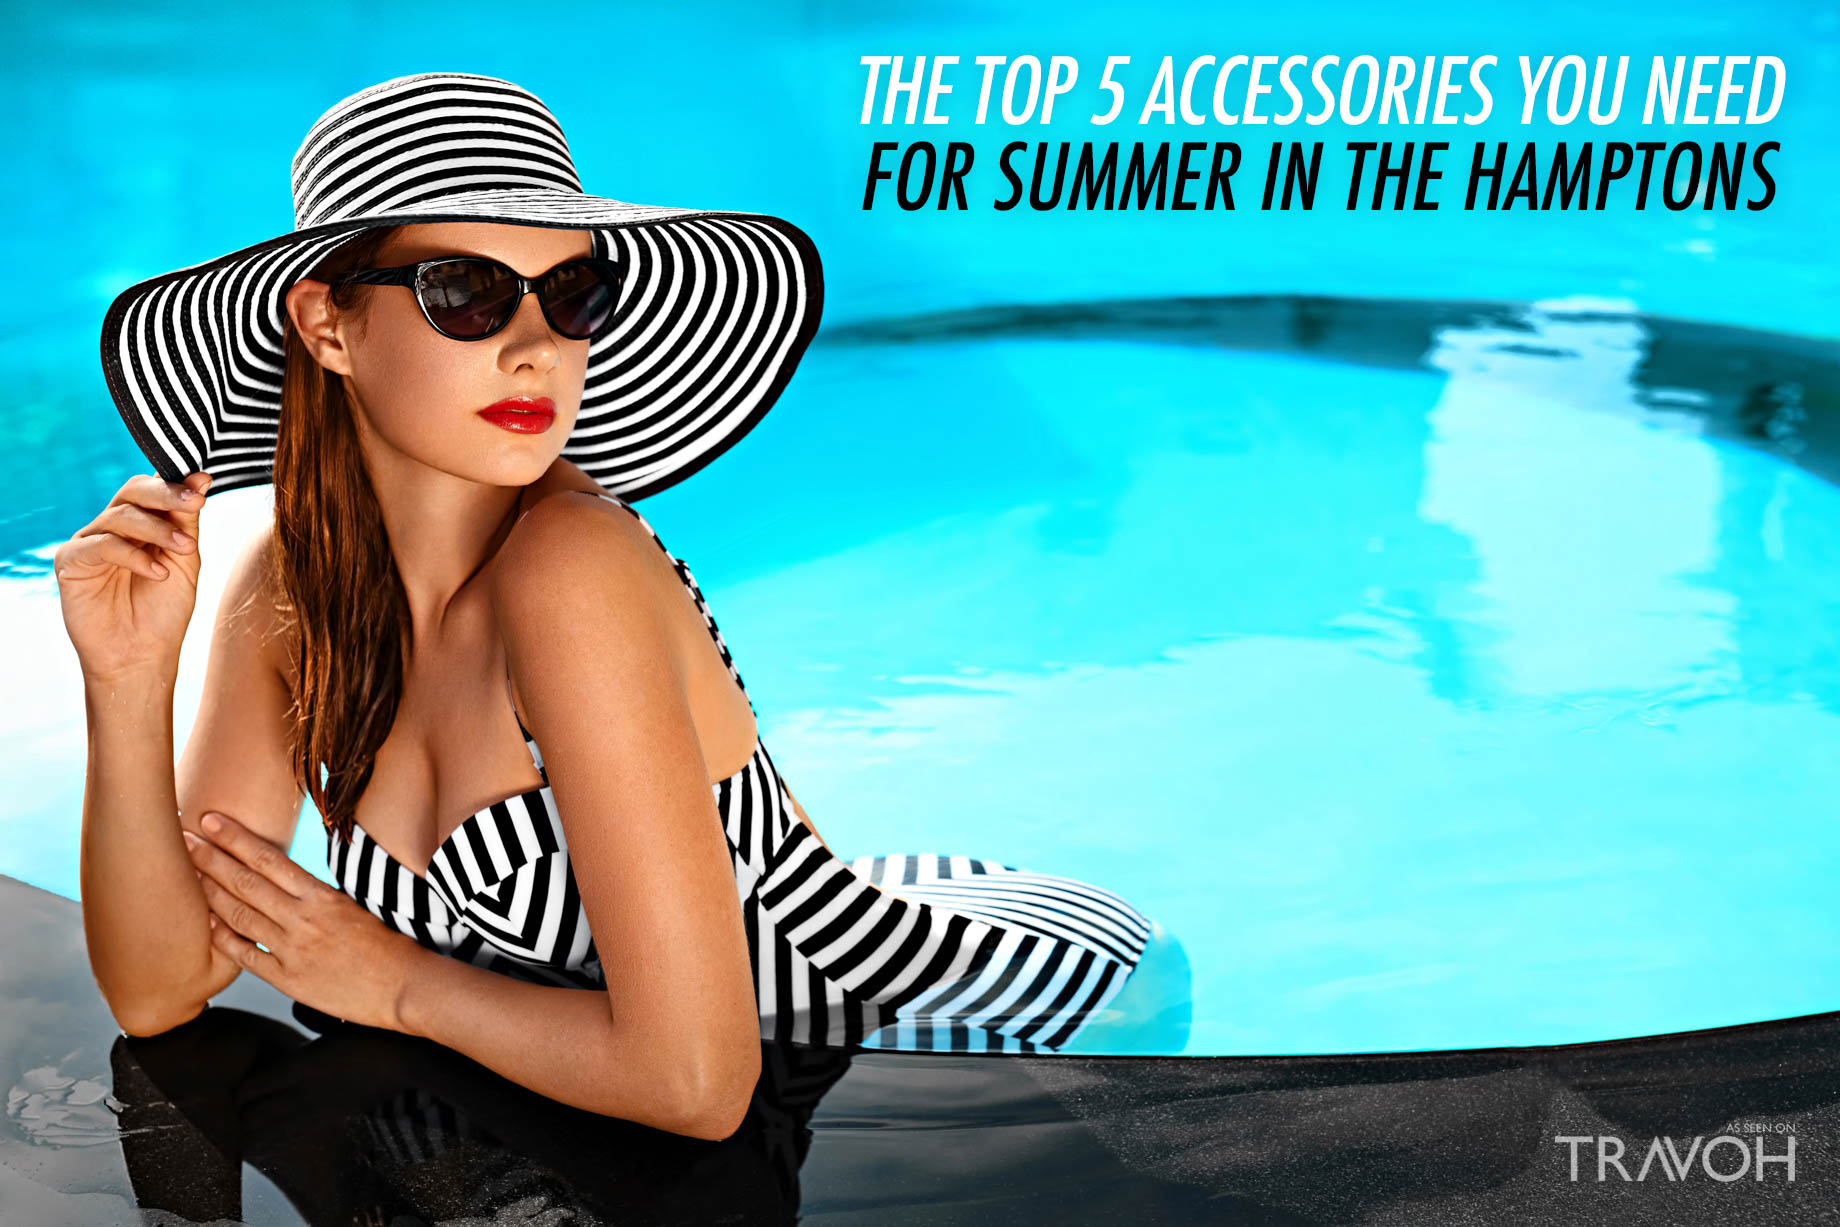 The Top 5 Accessories You Need For Summer in the Hamptons